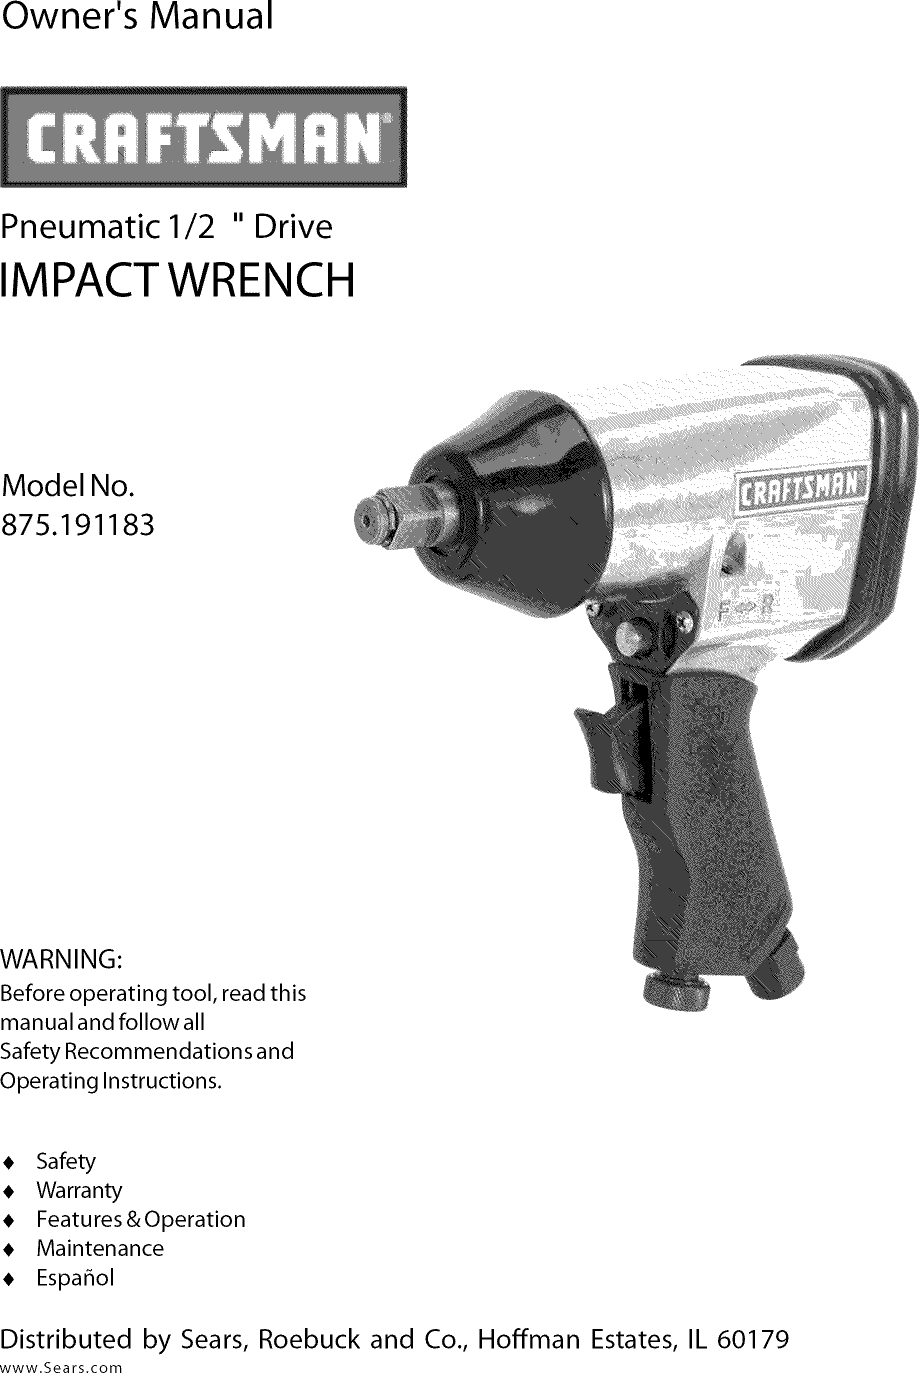 Companion Impact Wrench Parts Manual Guide